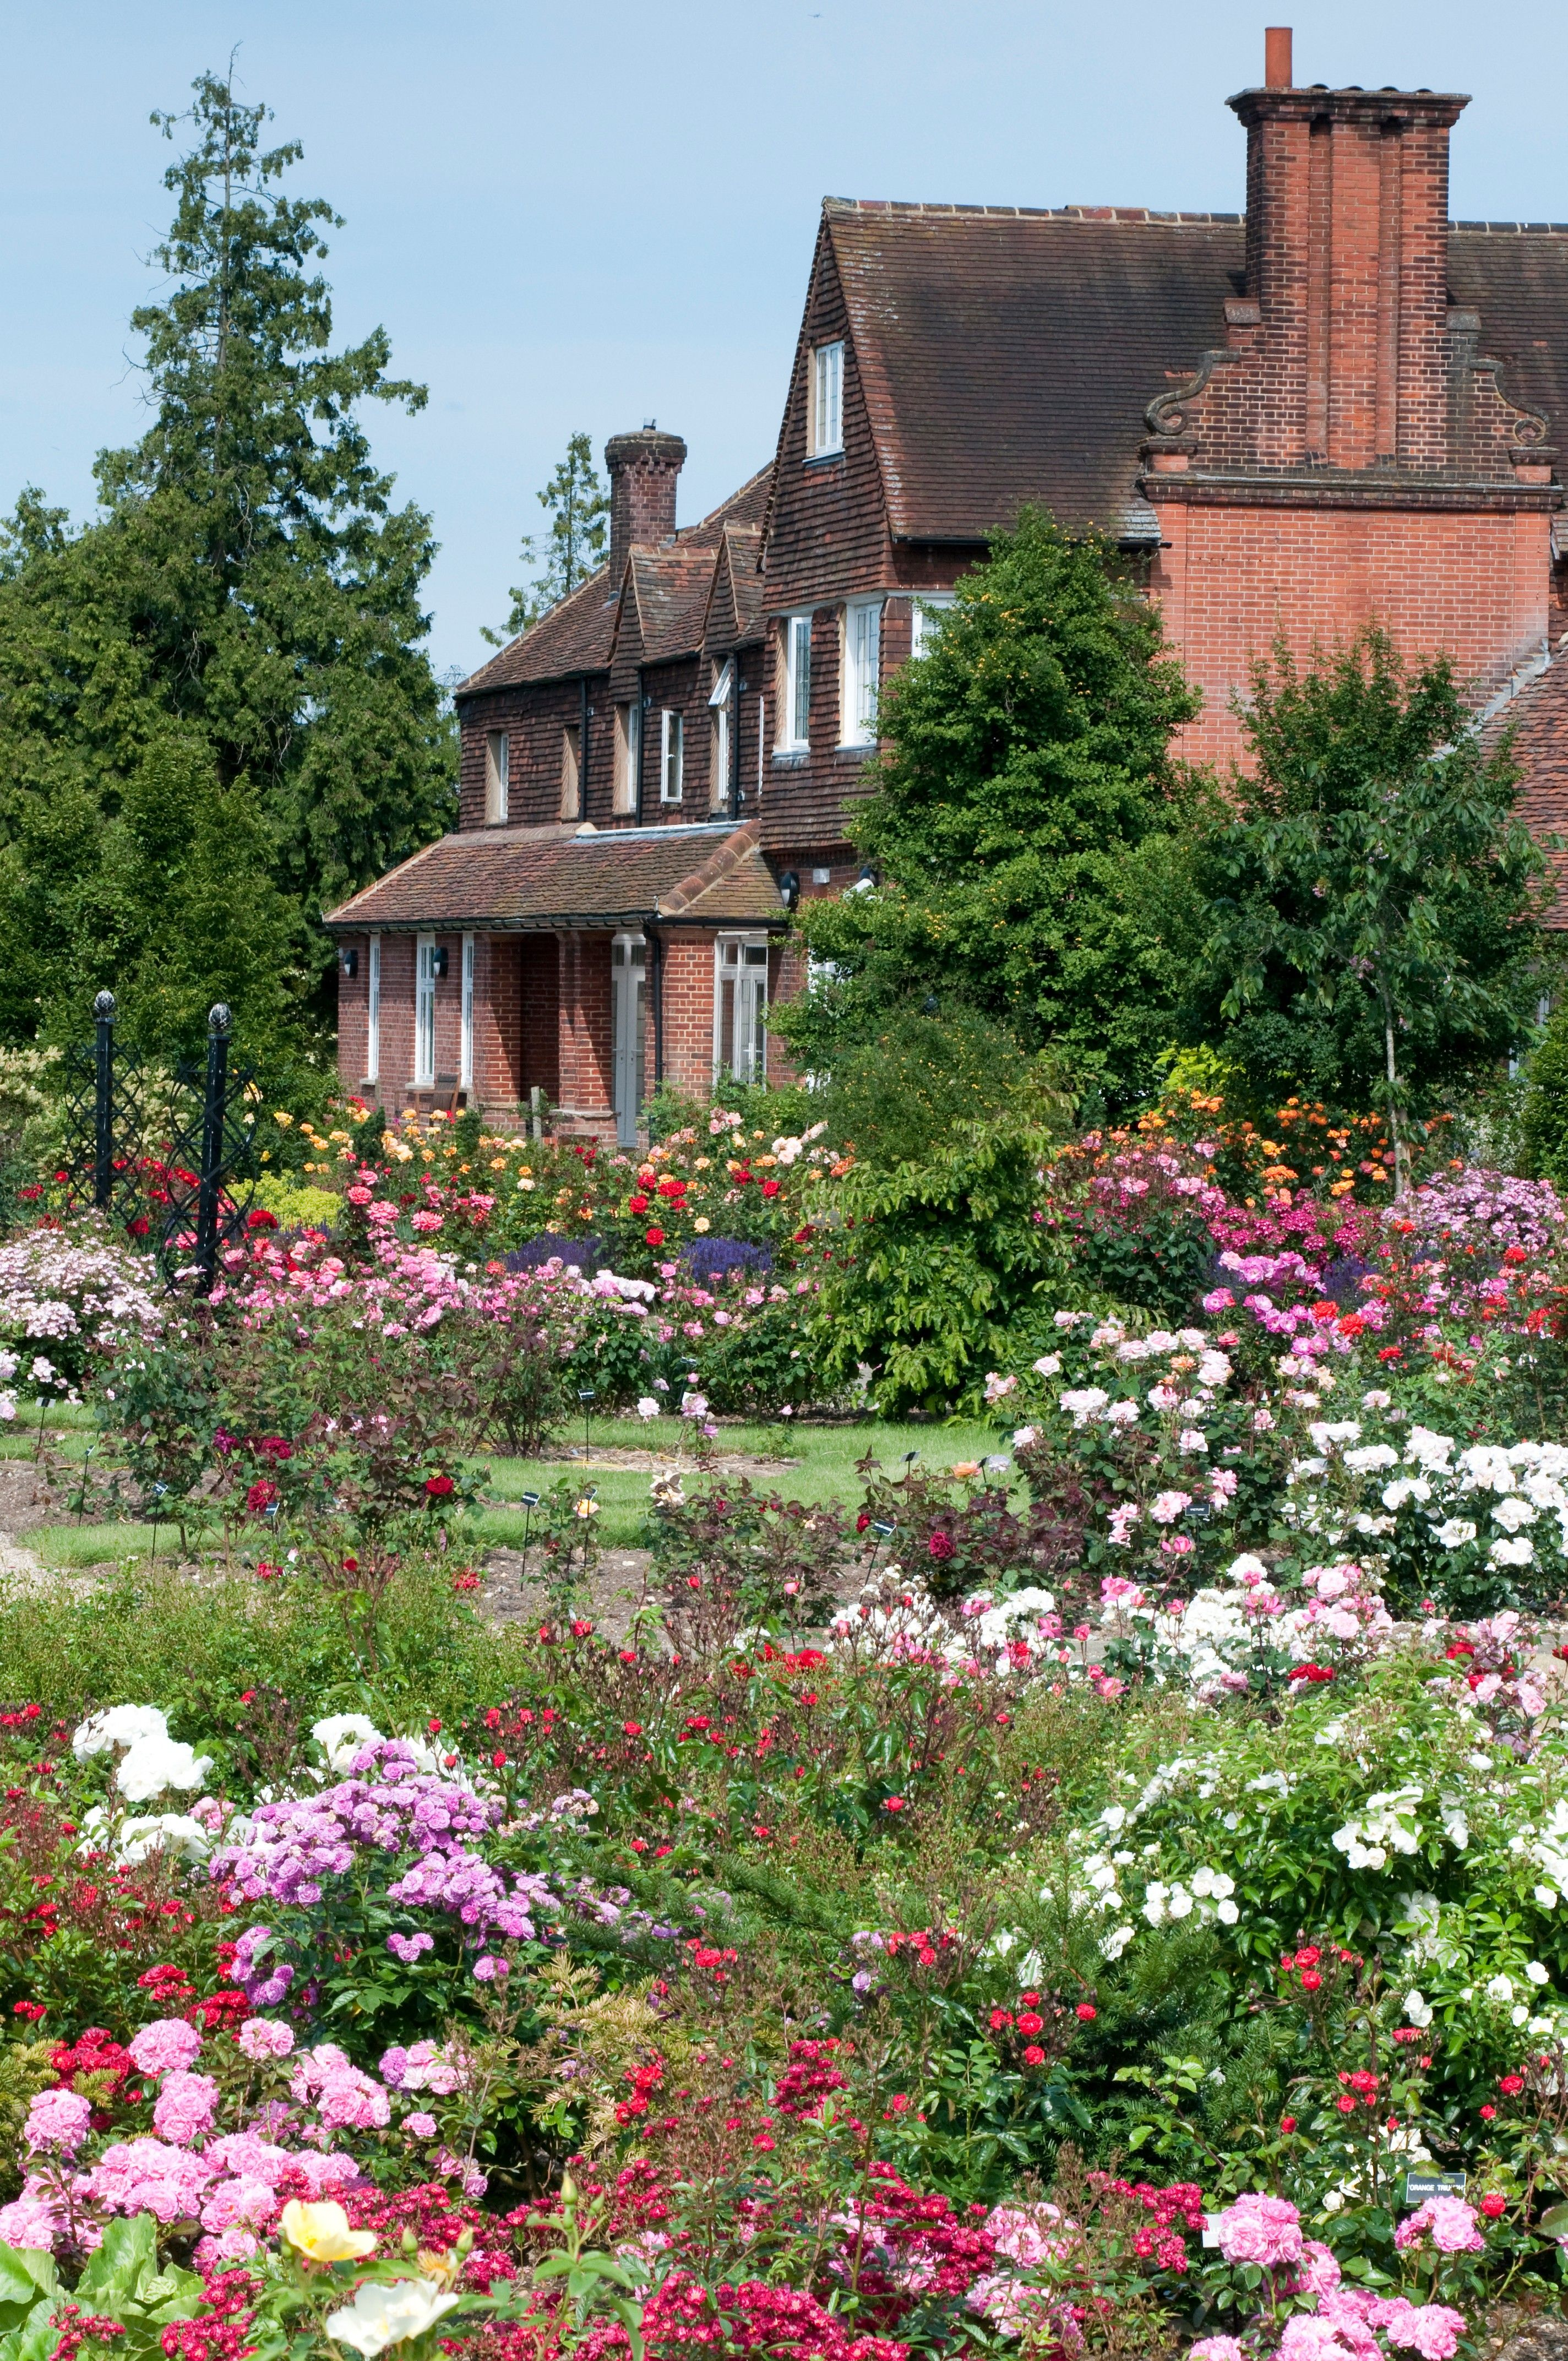 english country house gardens of the rose hertfordshire england